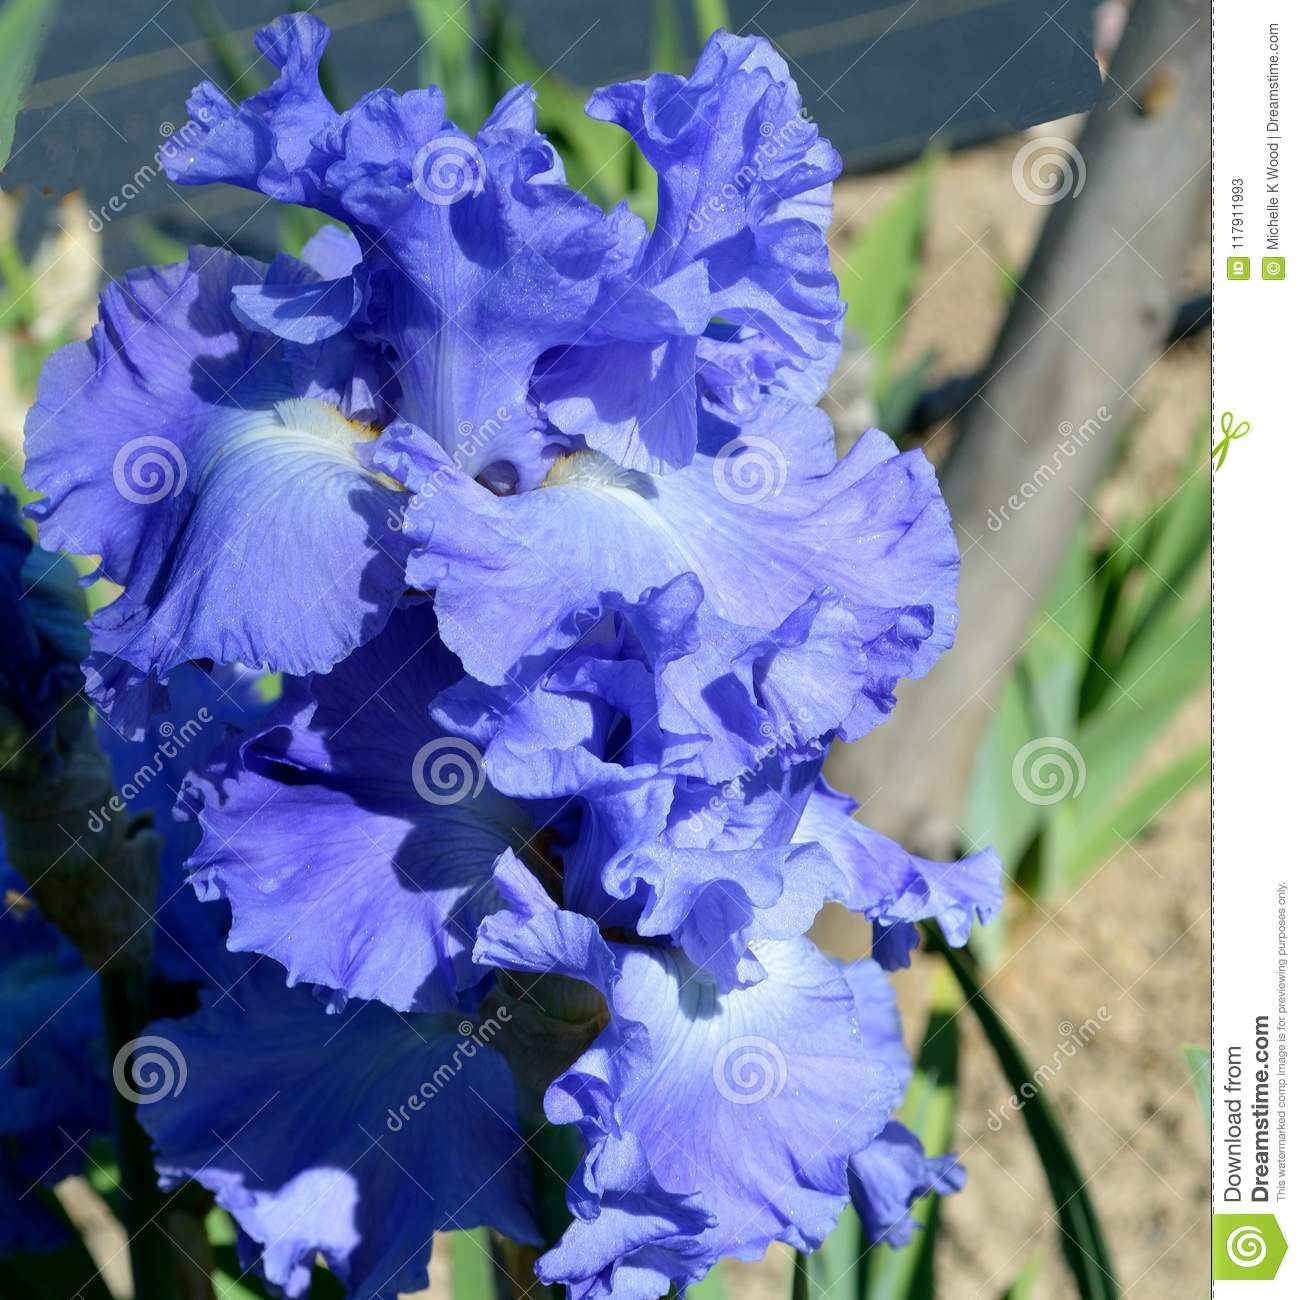 Metoleus blue bearded iris stock image image of genus 117911993 iris a perennial plant grown from creeping rhizomes is a genus of about 260300 species of flowering plants with showy flowers izmirmasajfo